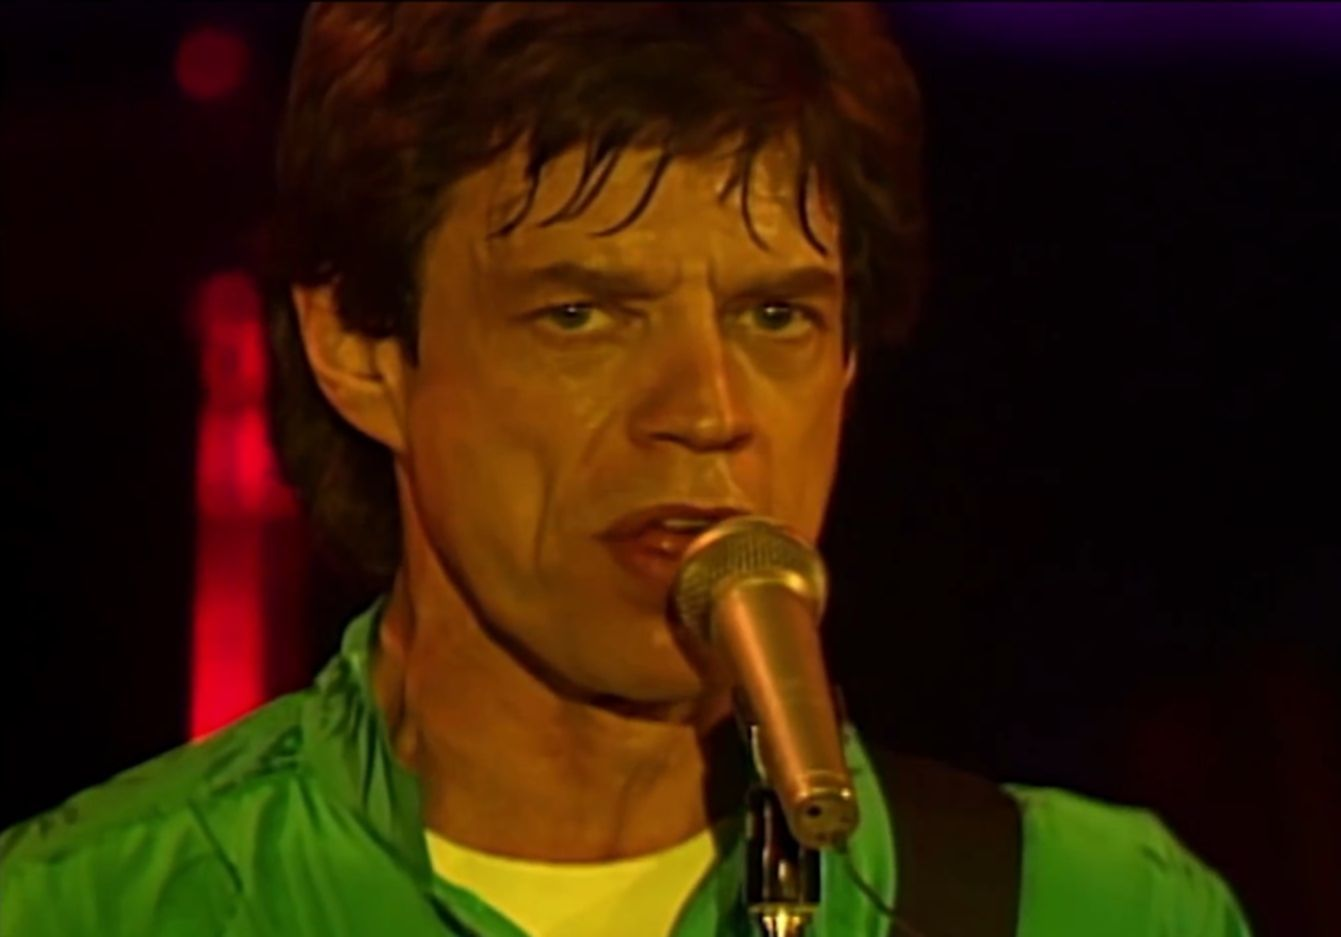 Mick Jagger video still 1990